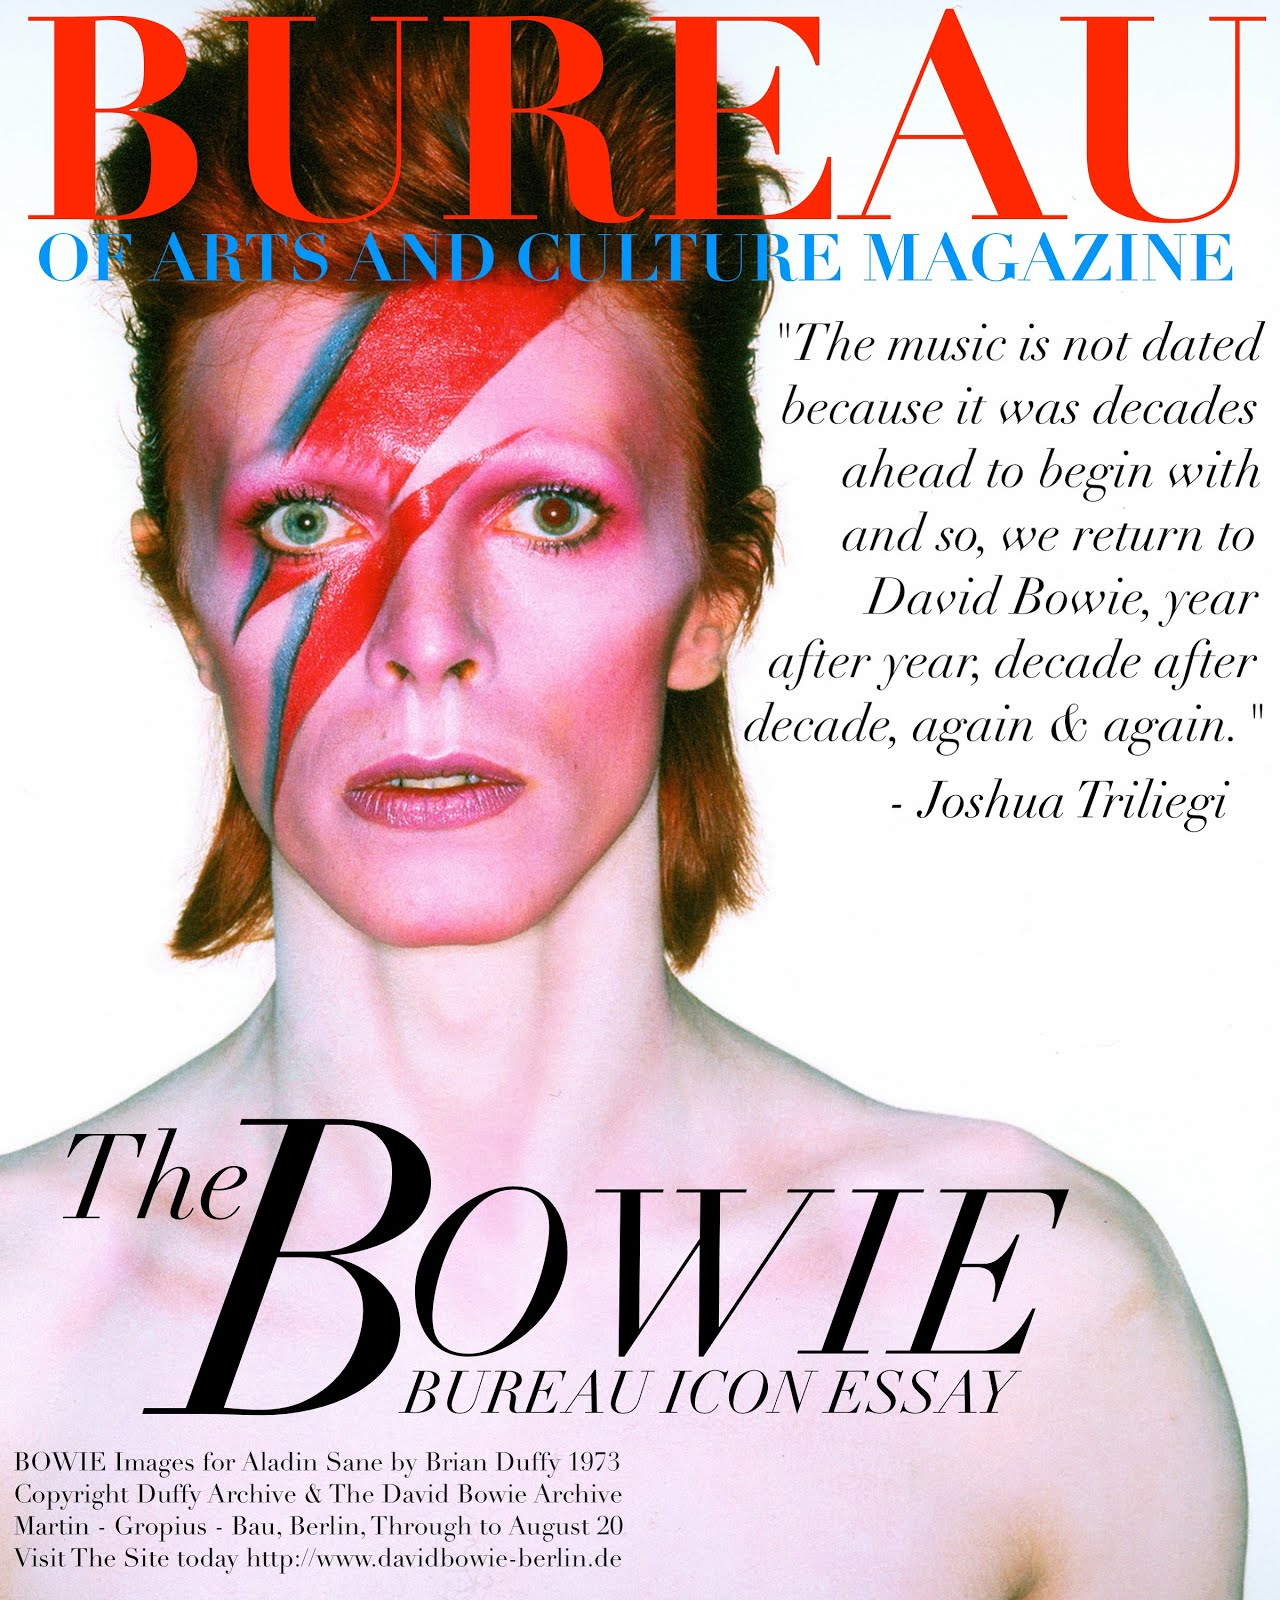 Tap DAVID BOWIE ICON ESSAY